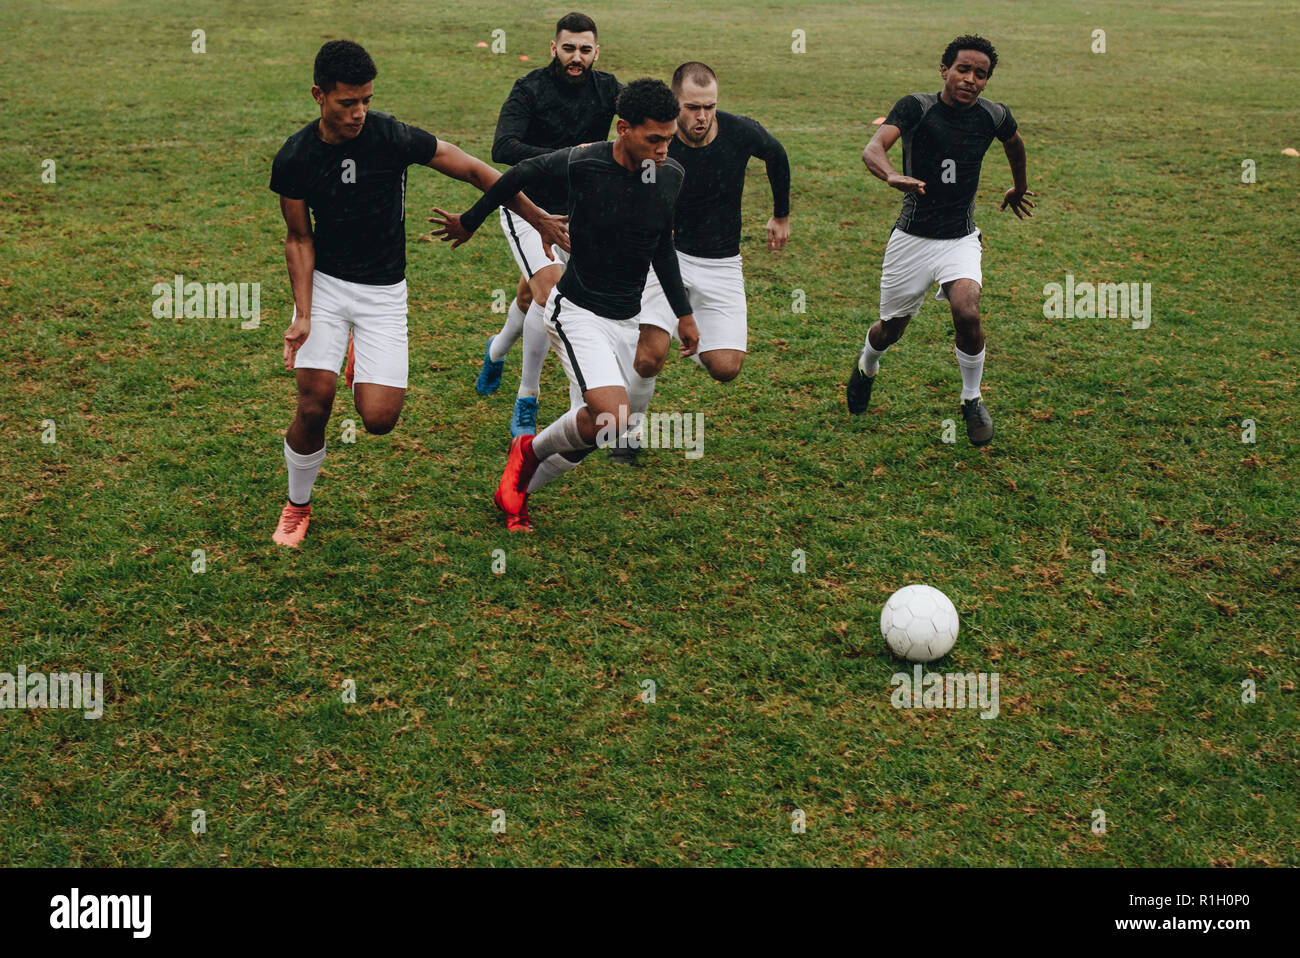 Group of men playing football on the field running for the ball. Soccer players running on field for possession of the ball. - Stock Image